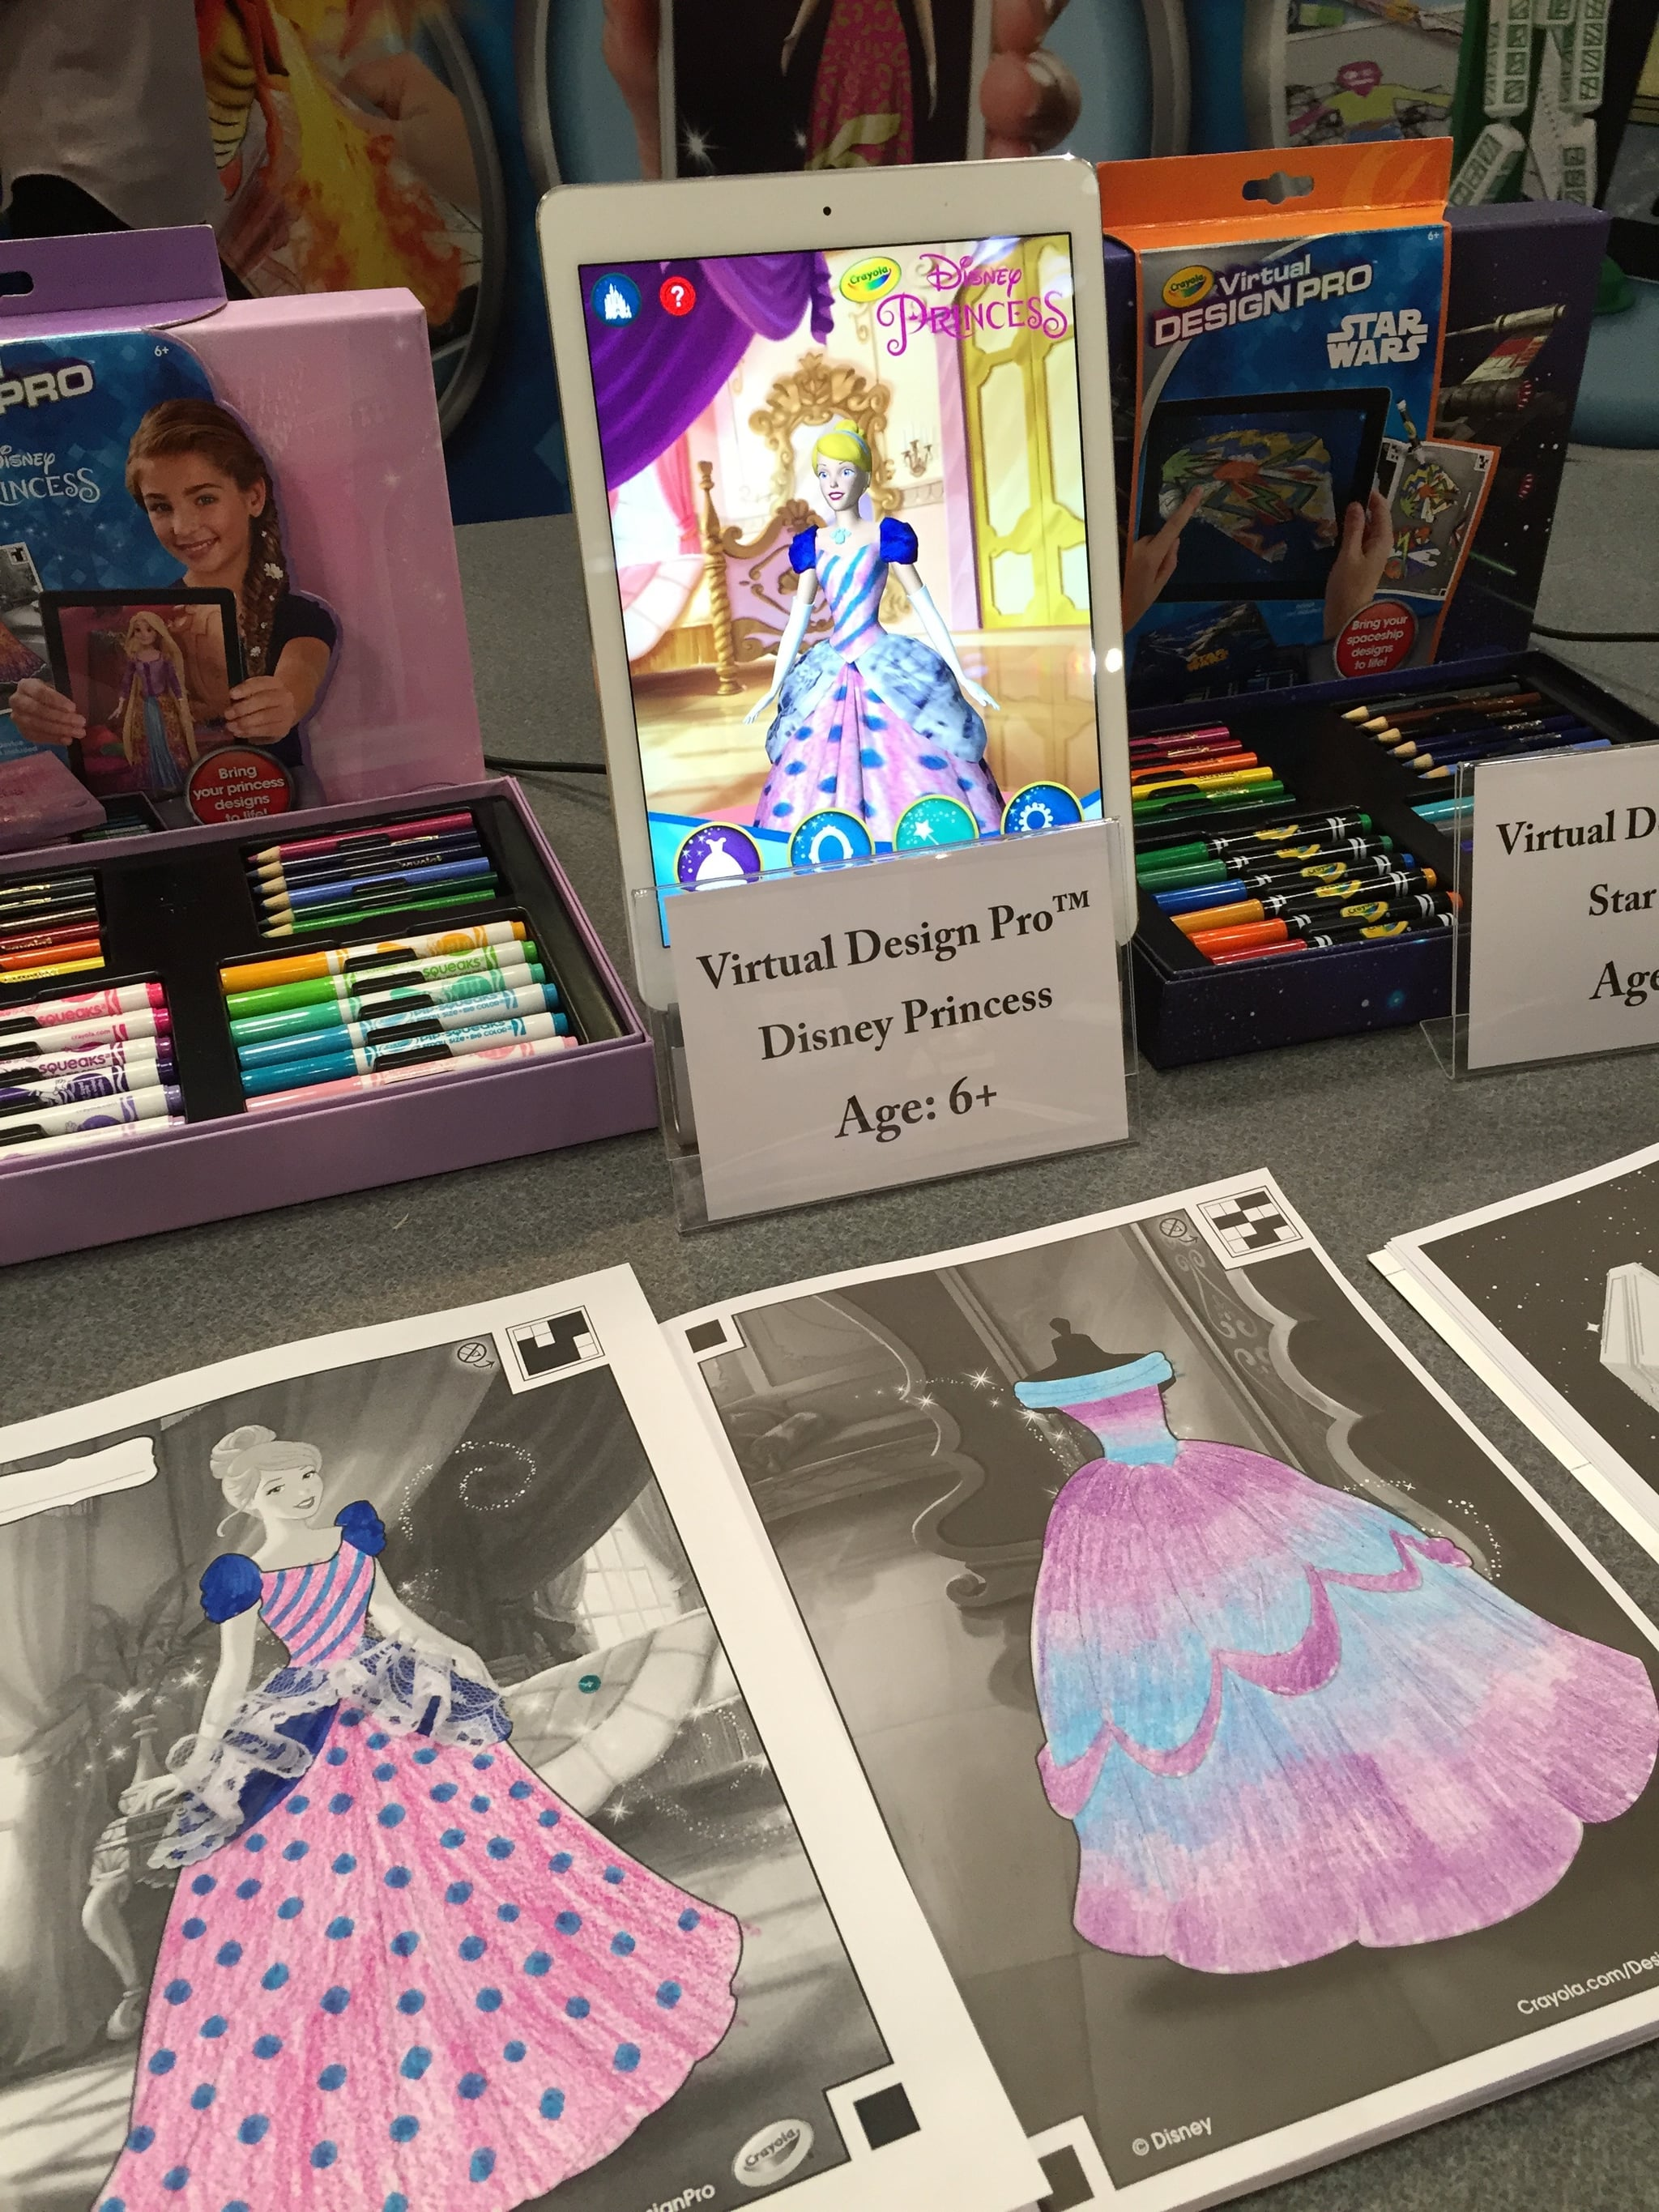 Crayola Virtual Design Pro Disney Princess Both Tots And Teens Are Going To Want These New Tech Toys Asap Popsugar Family Photo 10